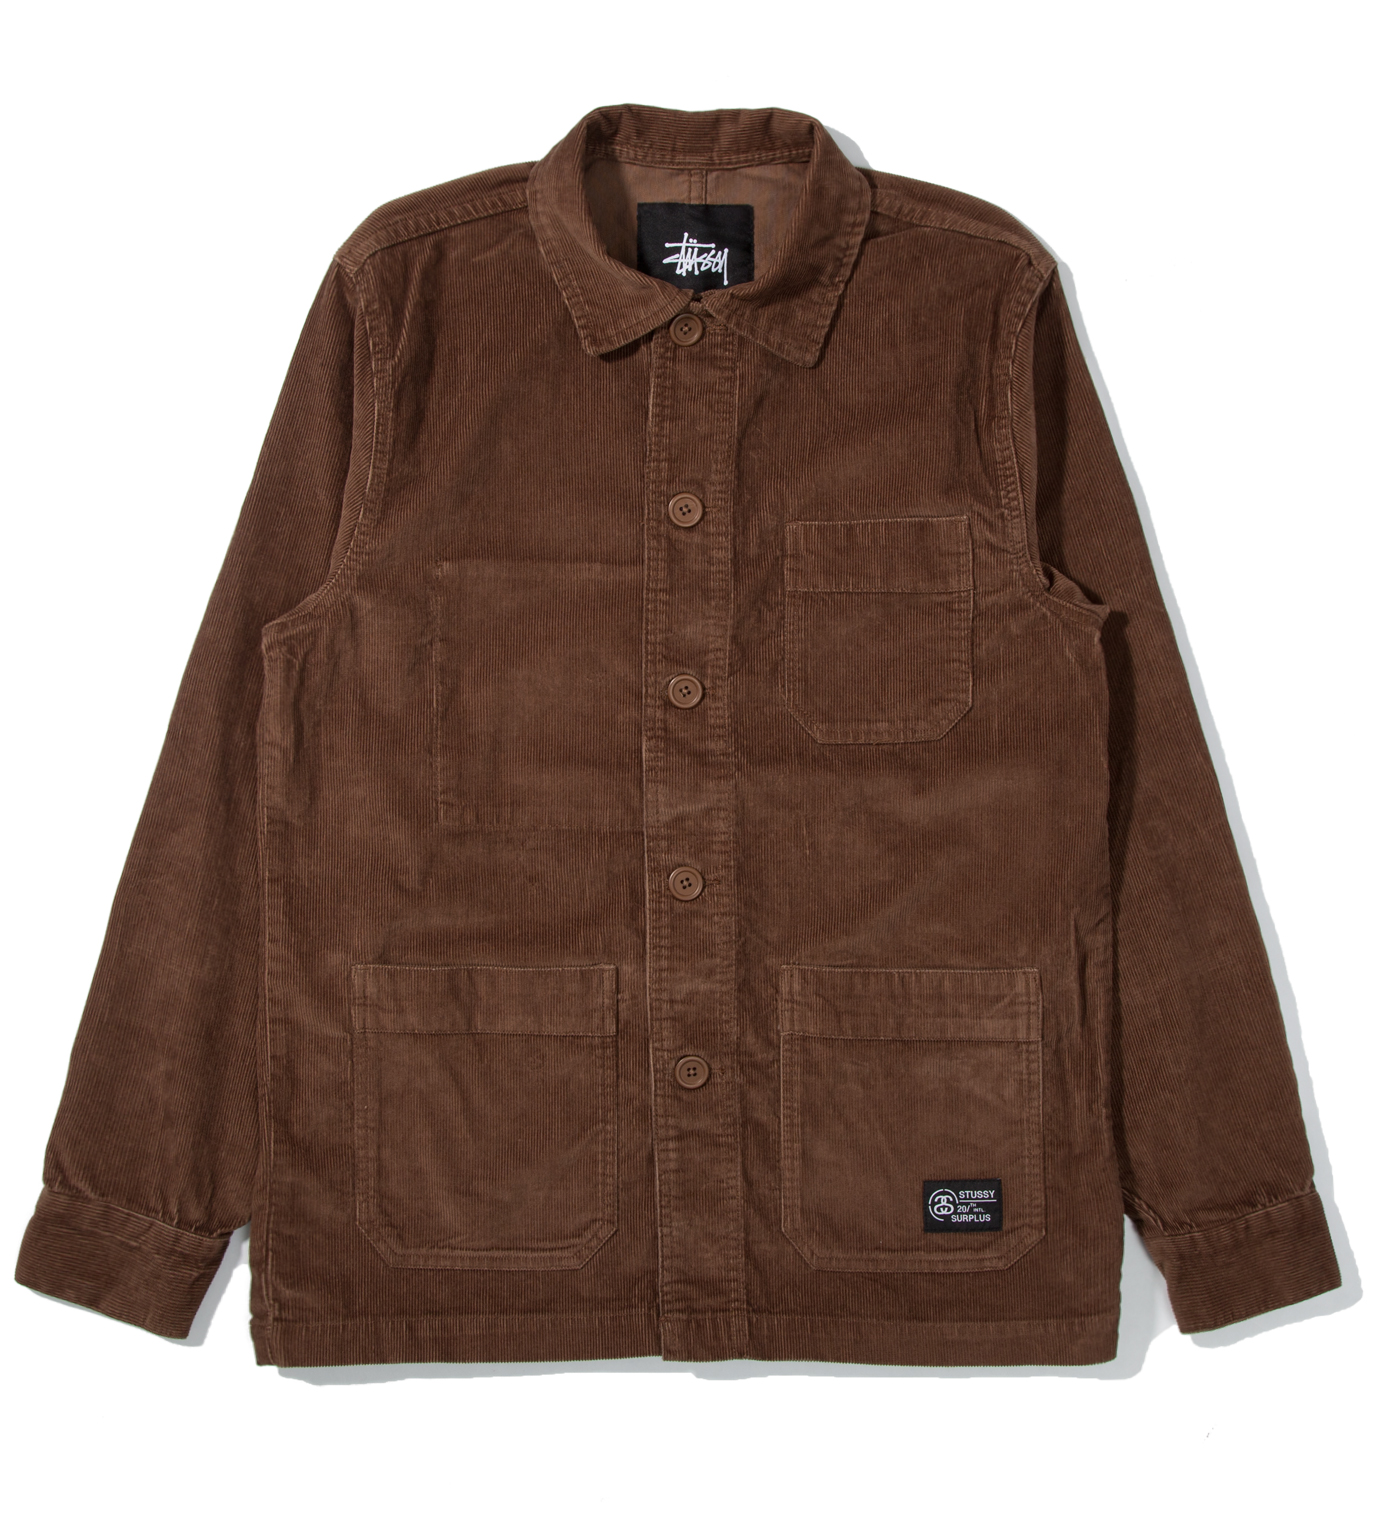 Stussy Brown Cord Work Jacket